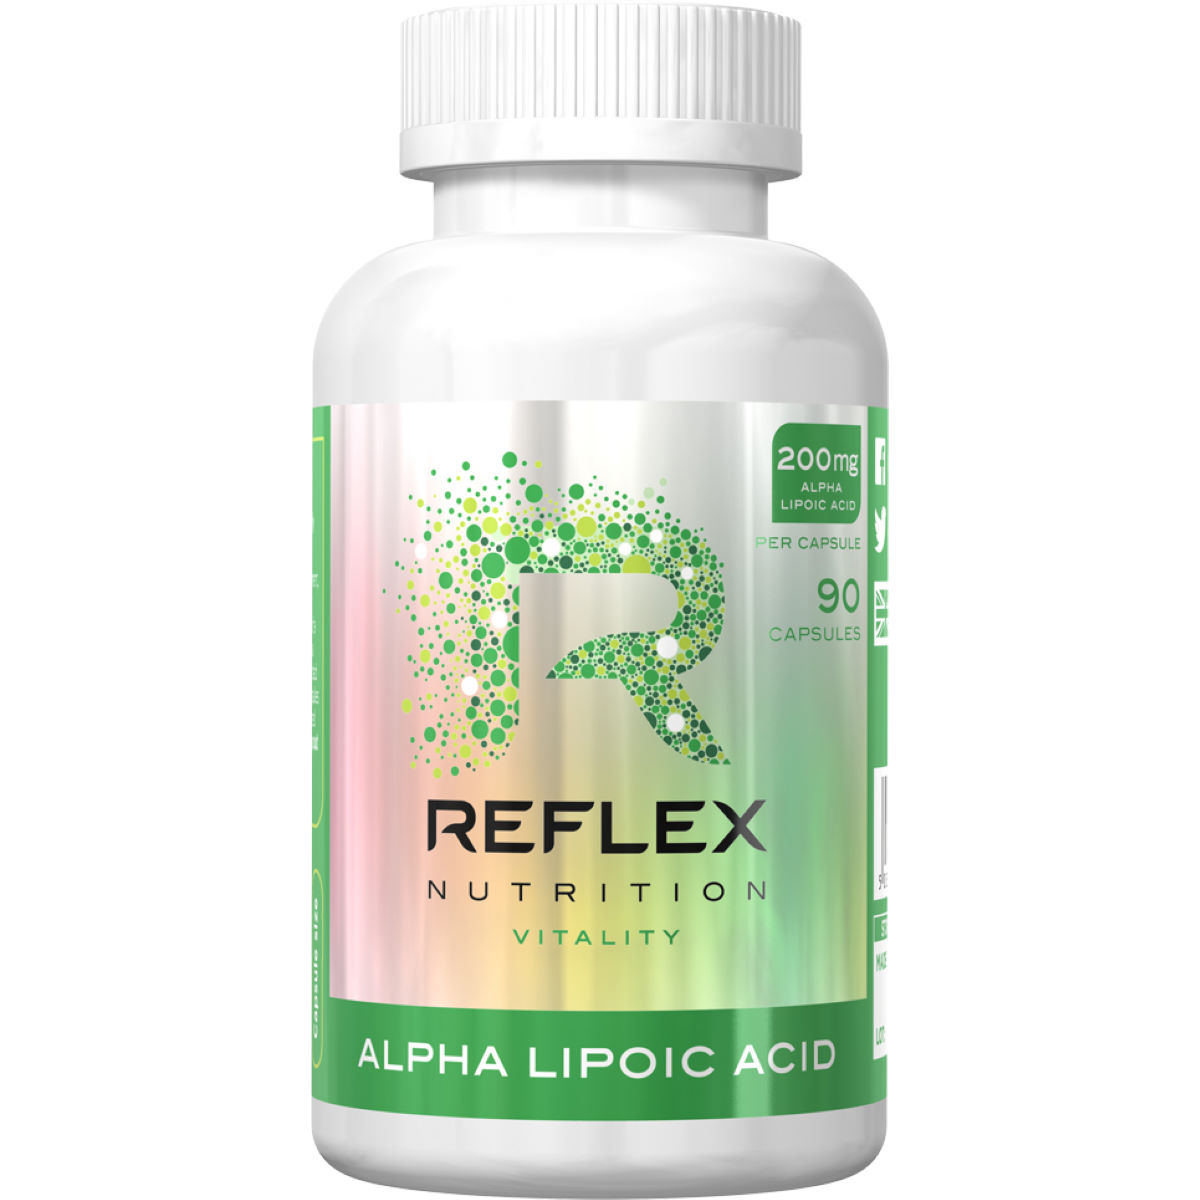 Reflex Reflex Alpha Lipoic Acid (90 Capsules)   Supplements